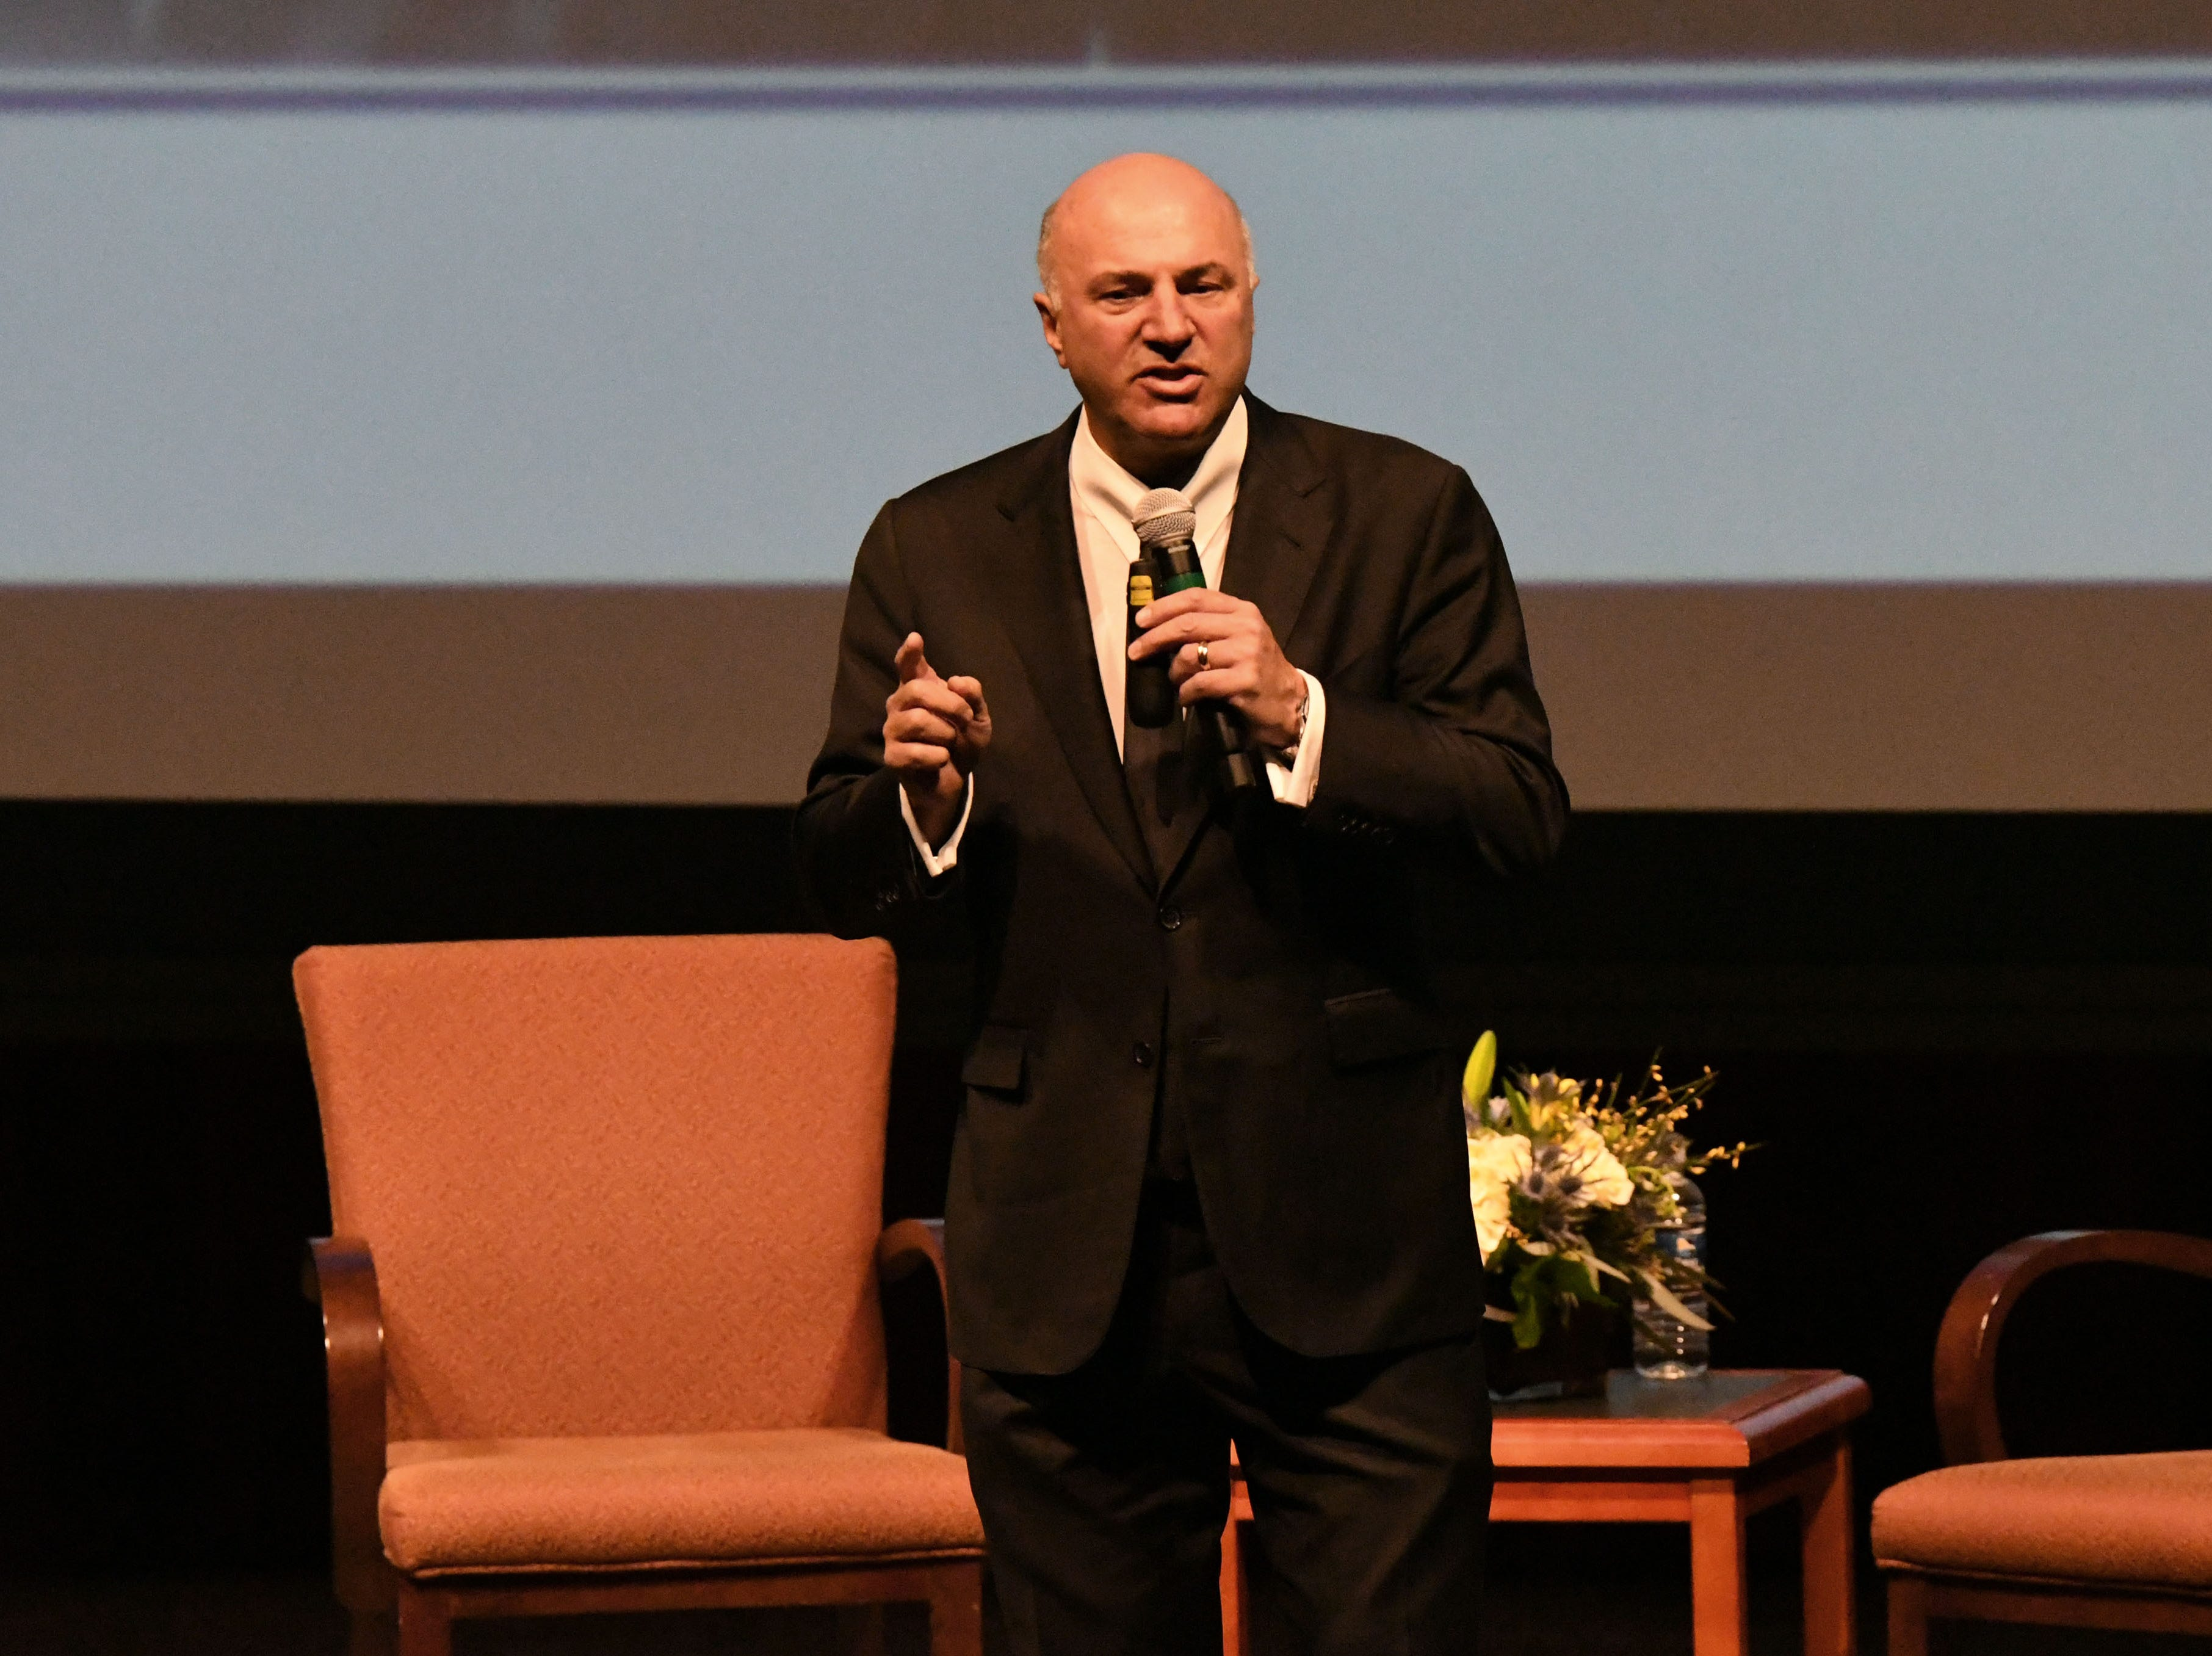 Shark Tank co-star and serial entrepreneur Kevin O'Leary talks to a crowd of more than a thousand people about entrepreneurship at the Power Forward business event in the Ruby Diamond Hall, Wednesday Feb. 6, 2019.